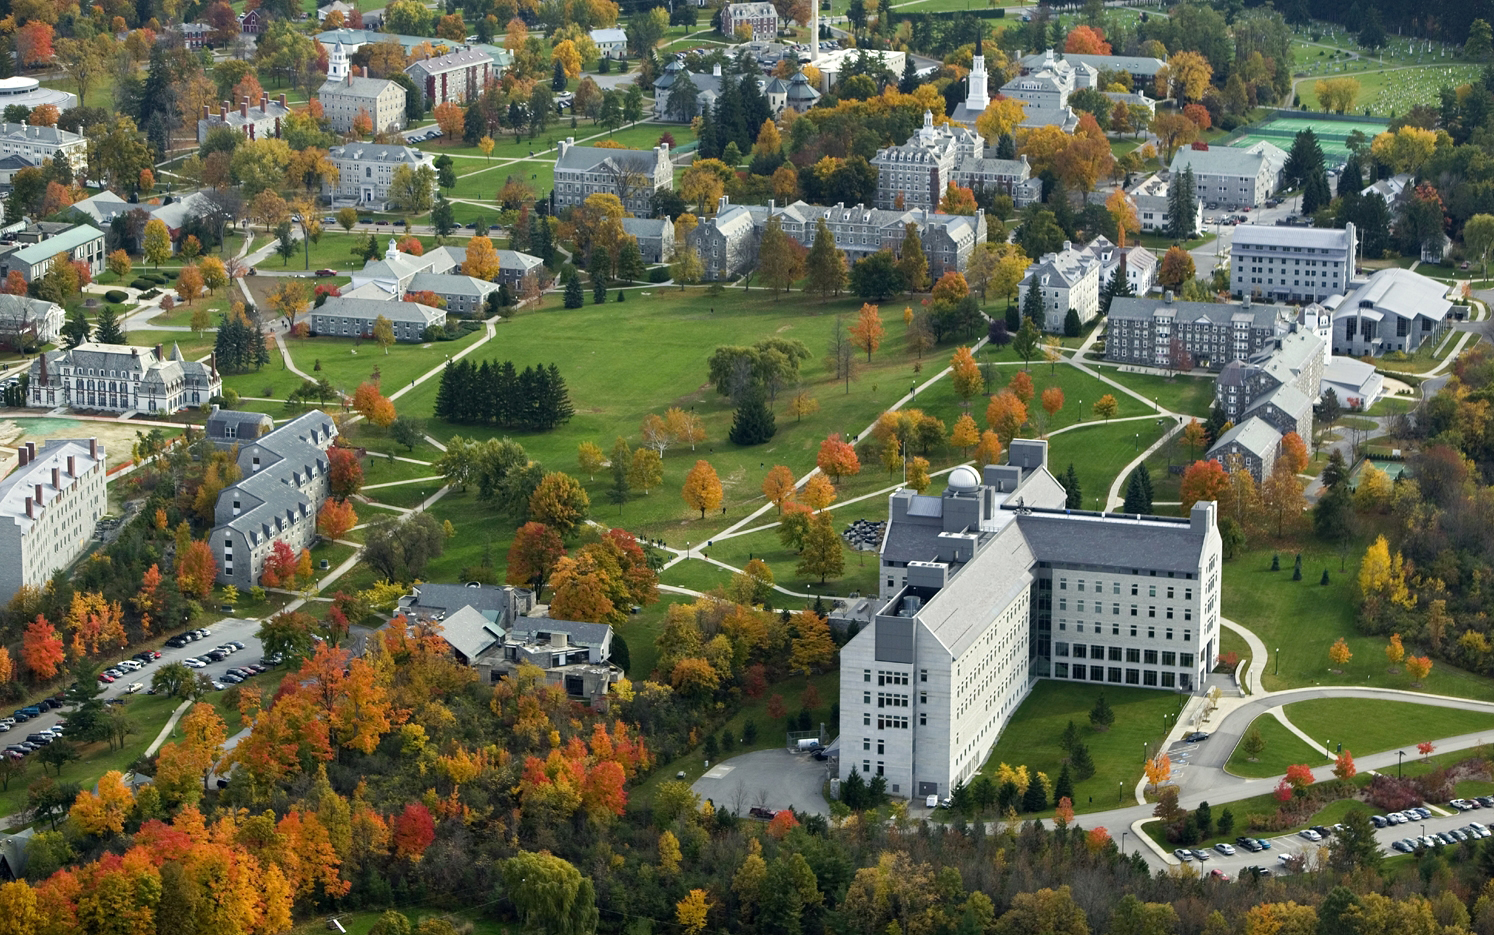 - Middlebury College